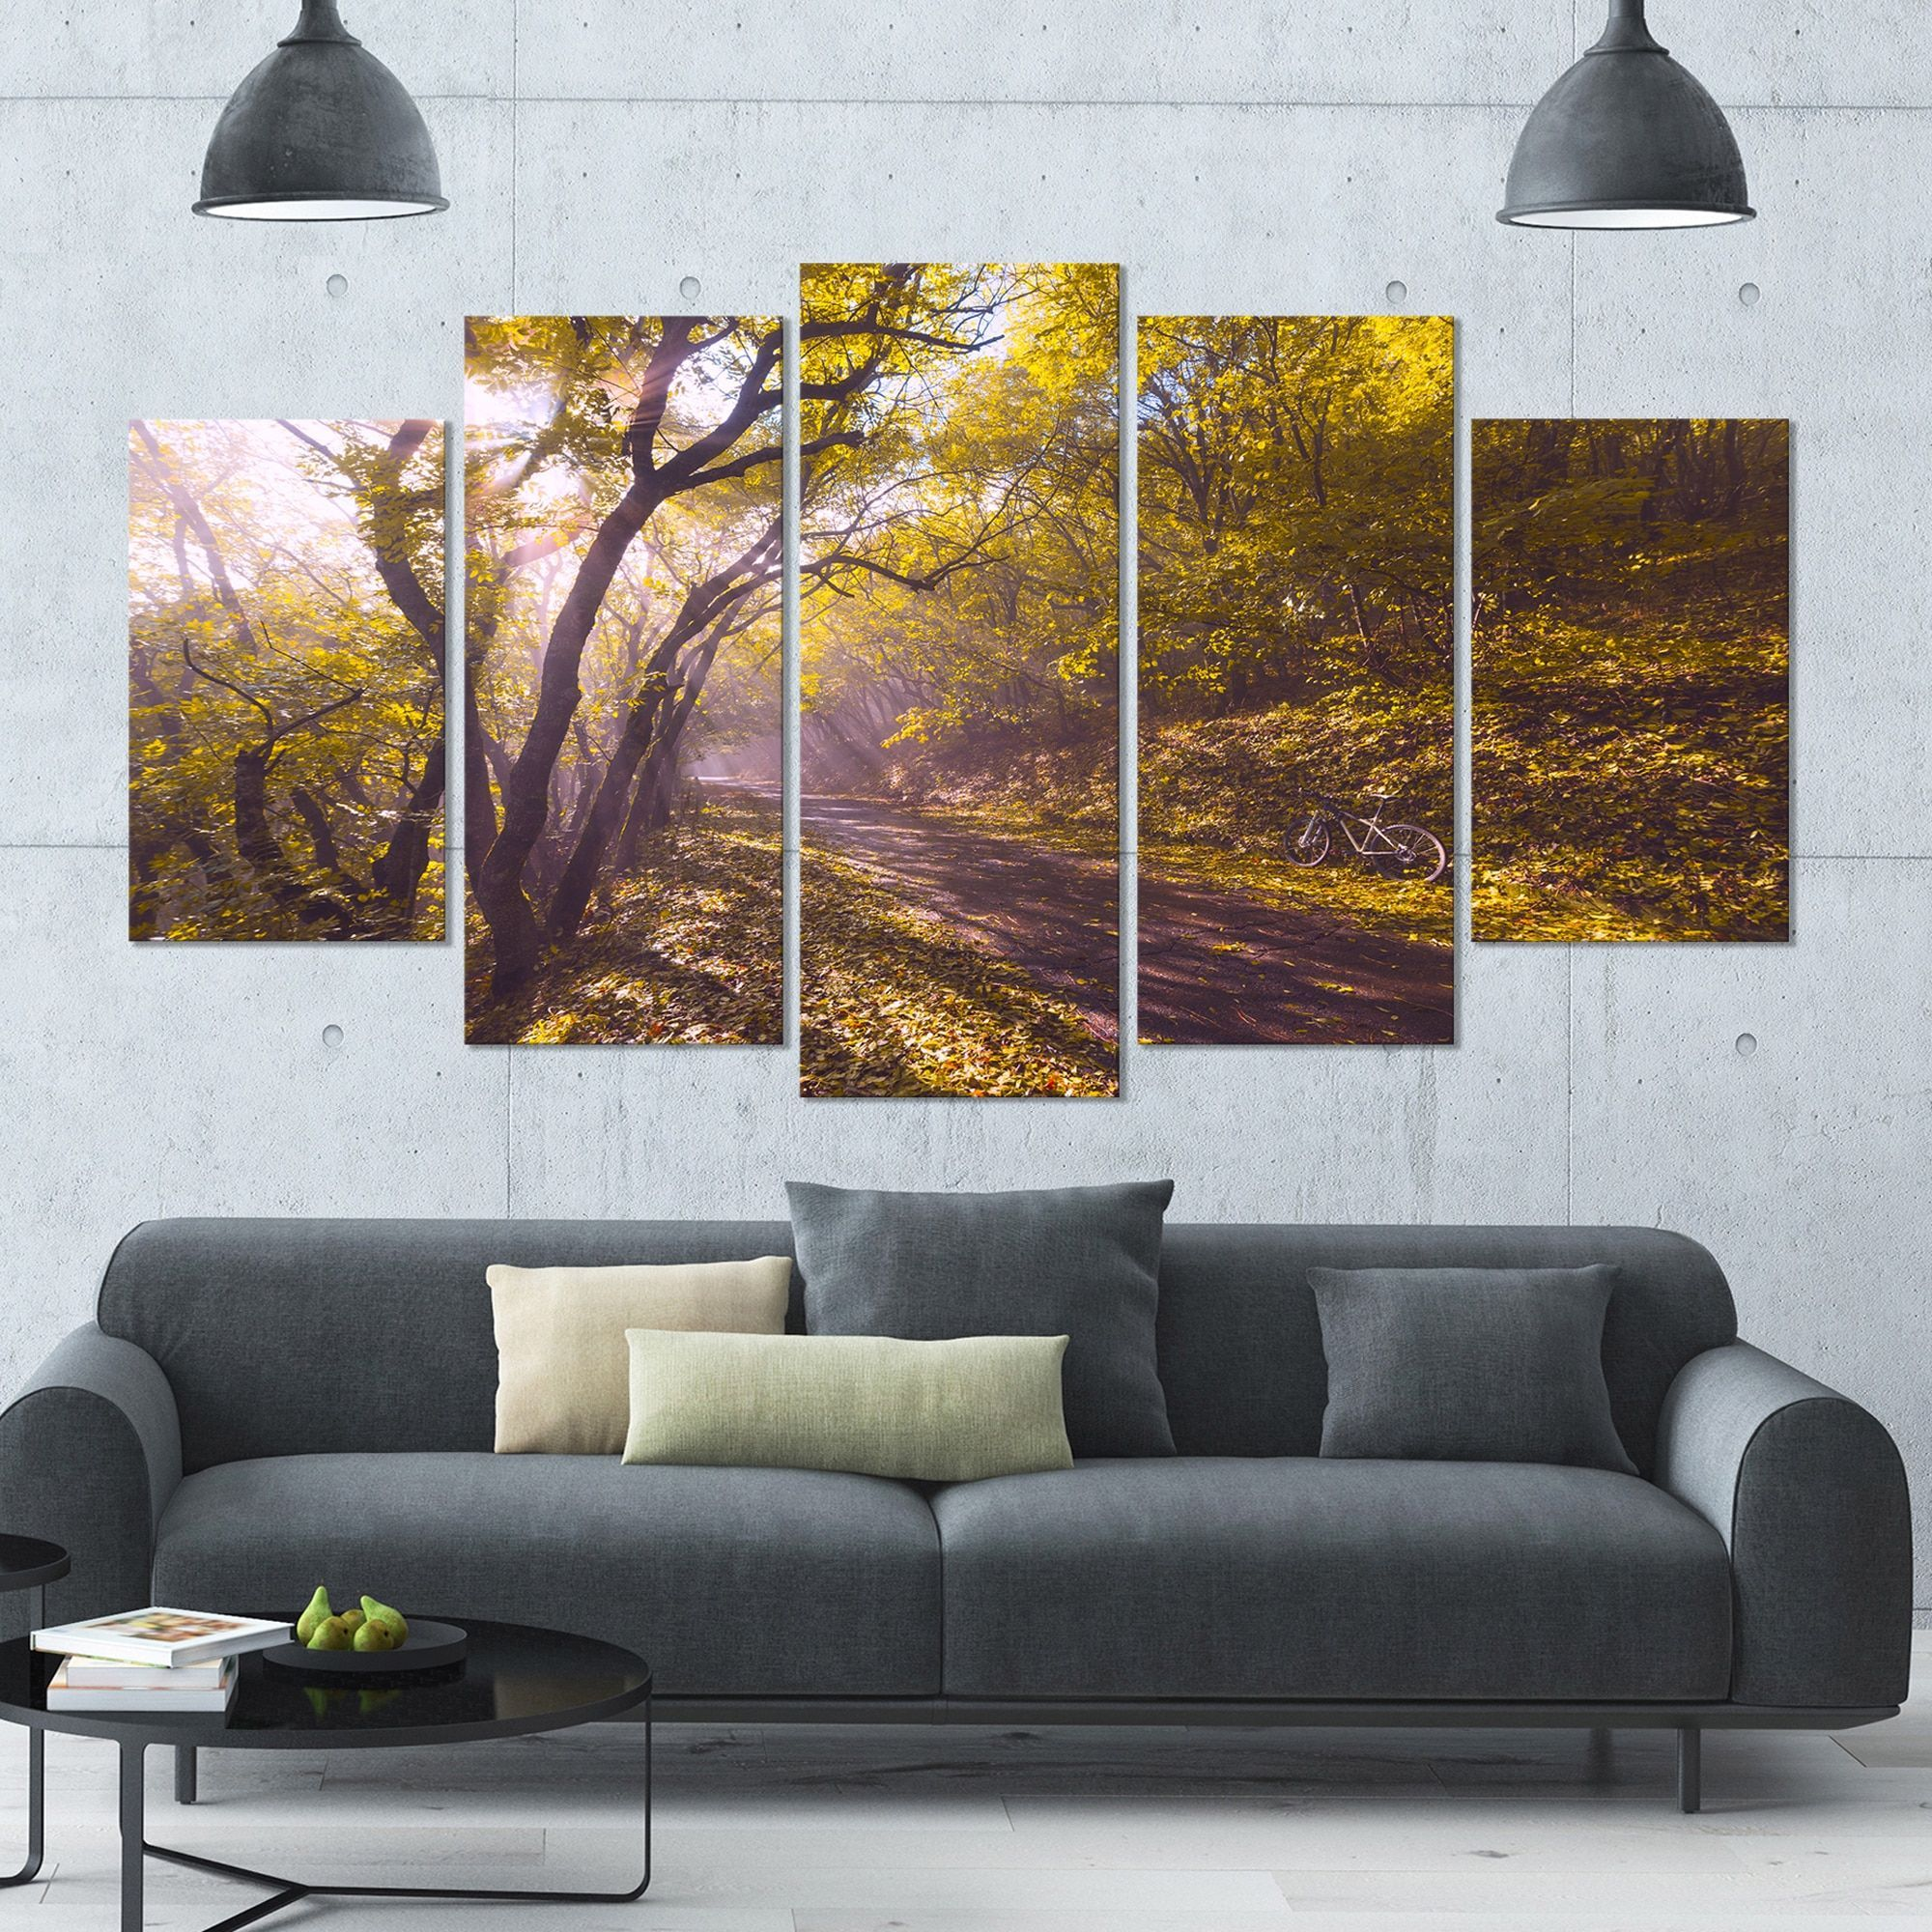 DESIGN ART Designart 'Bicycle Ride in Fall Forest' Landscape Wall Artwork  on Canvas -